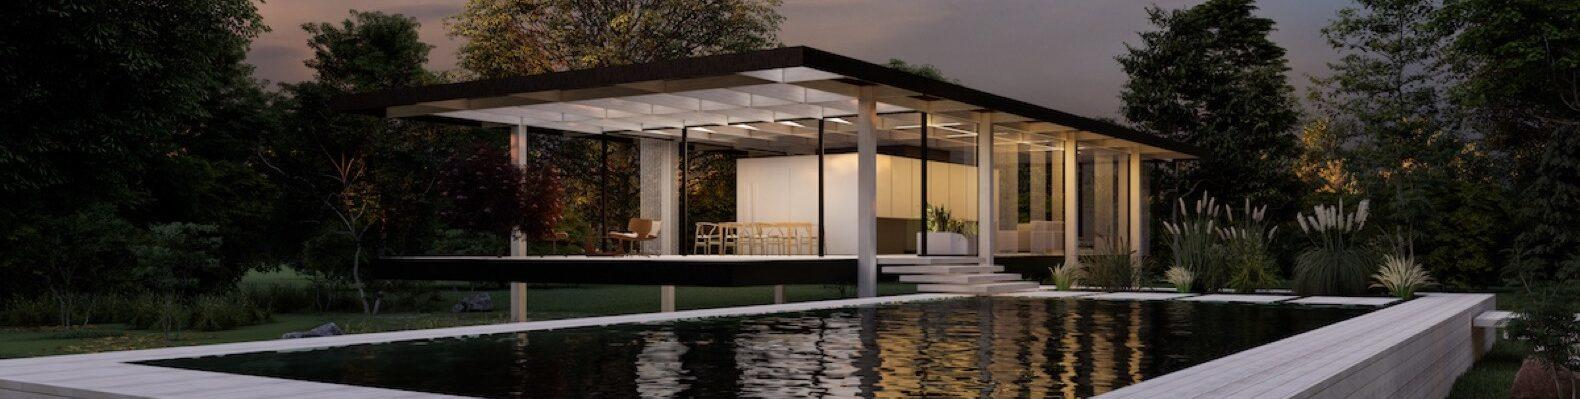 rendering of Farnsworth House made of cross-laminated timber with a natural pool onsite